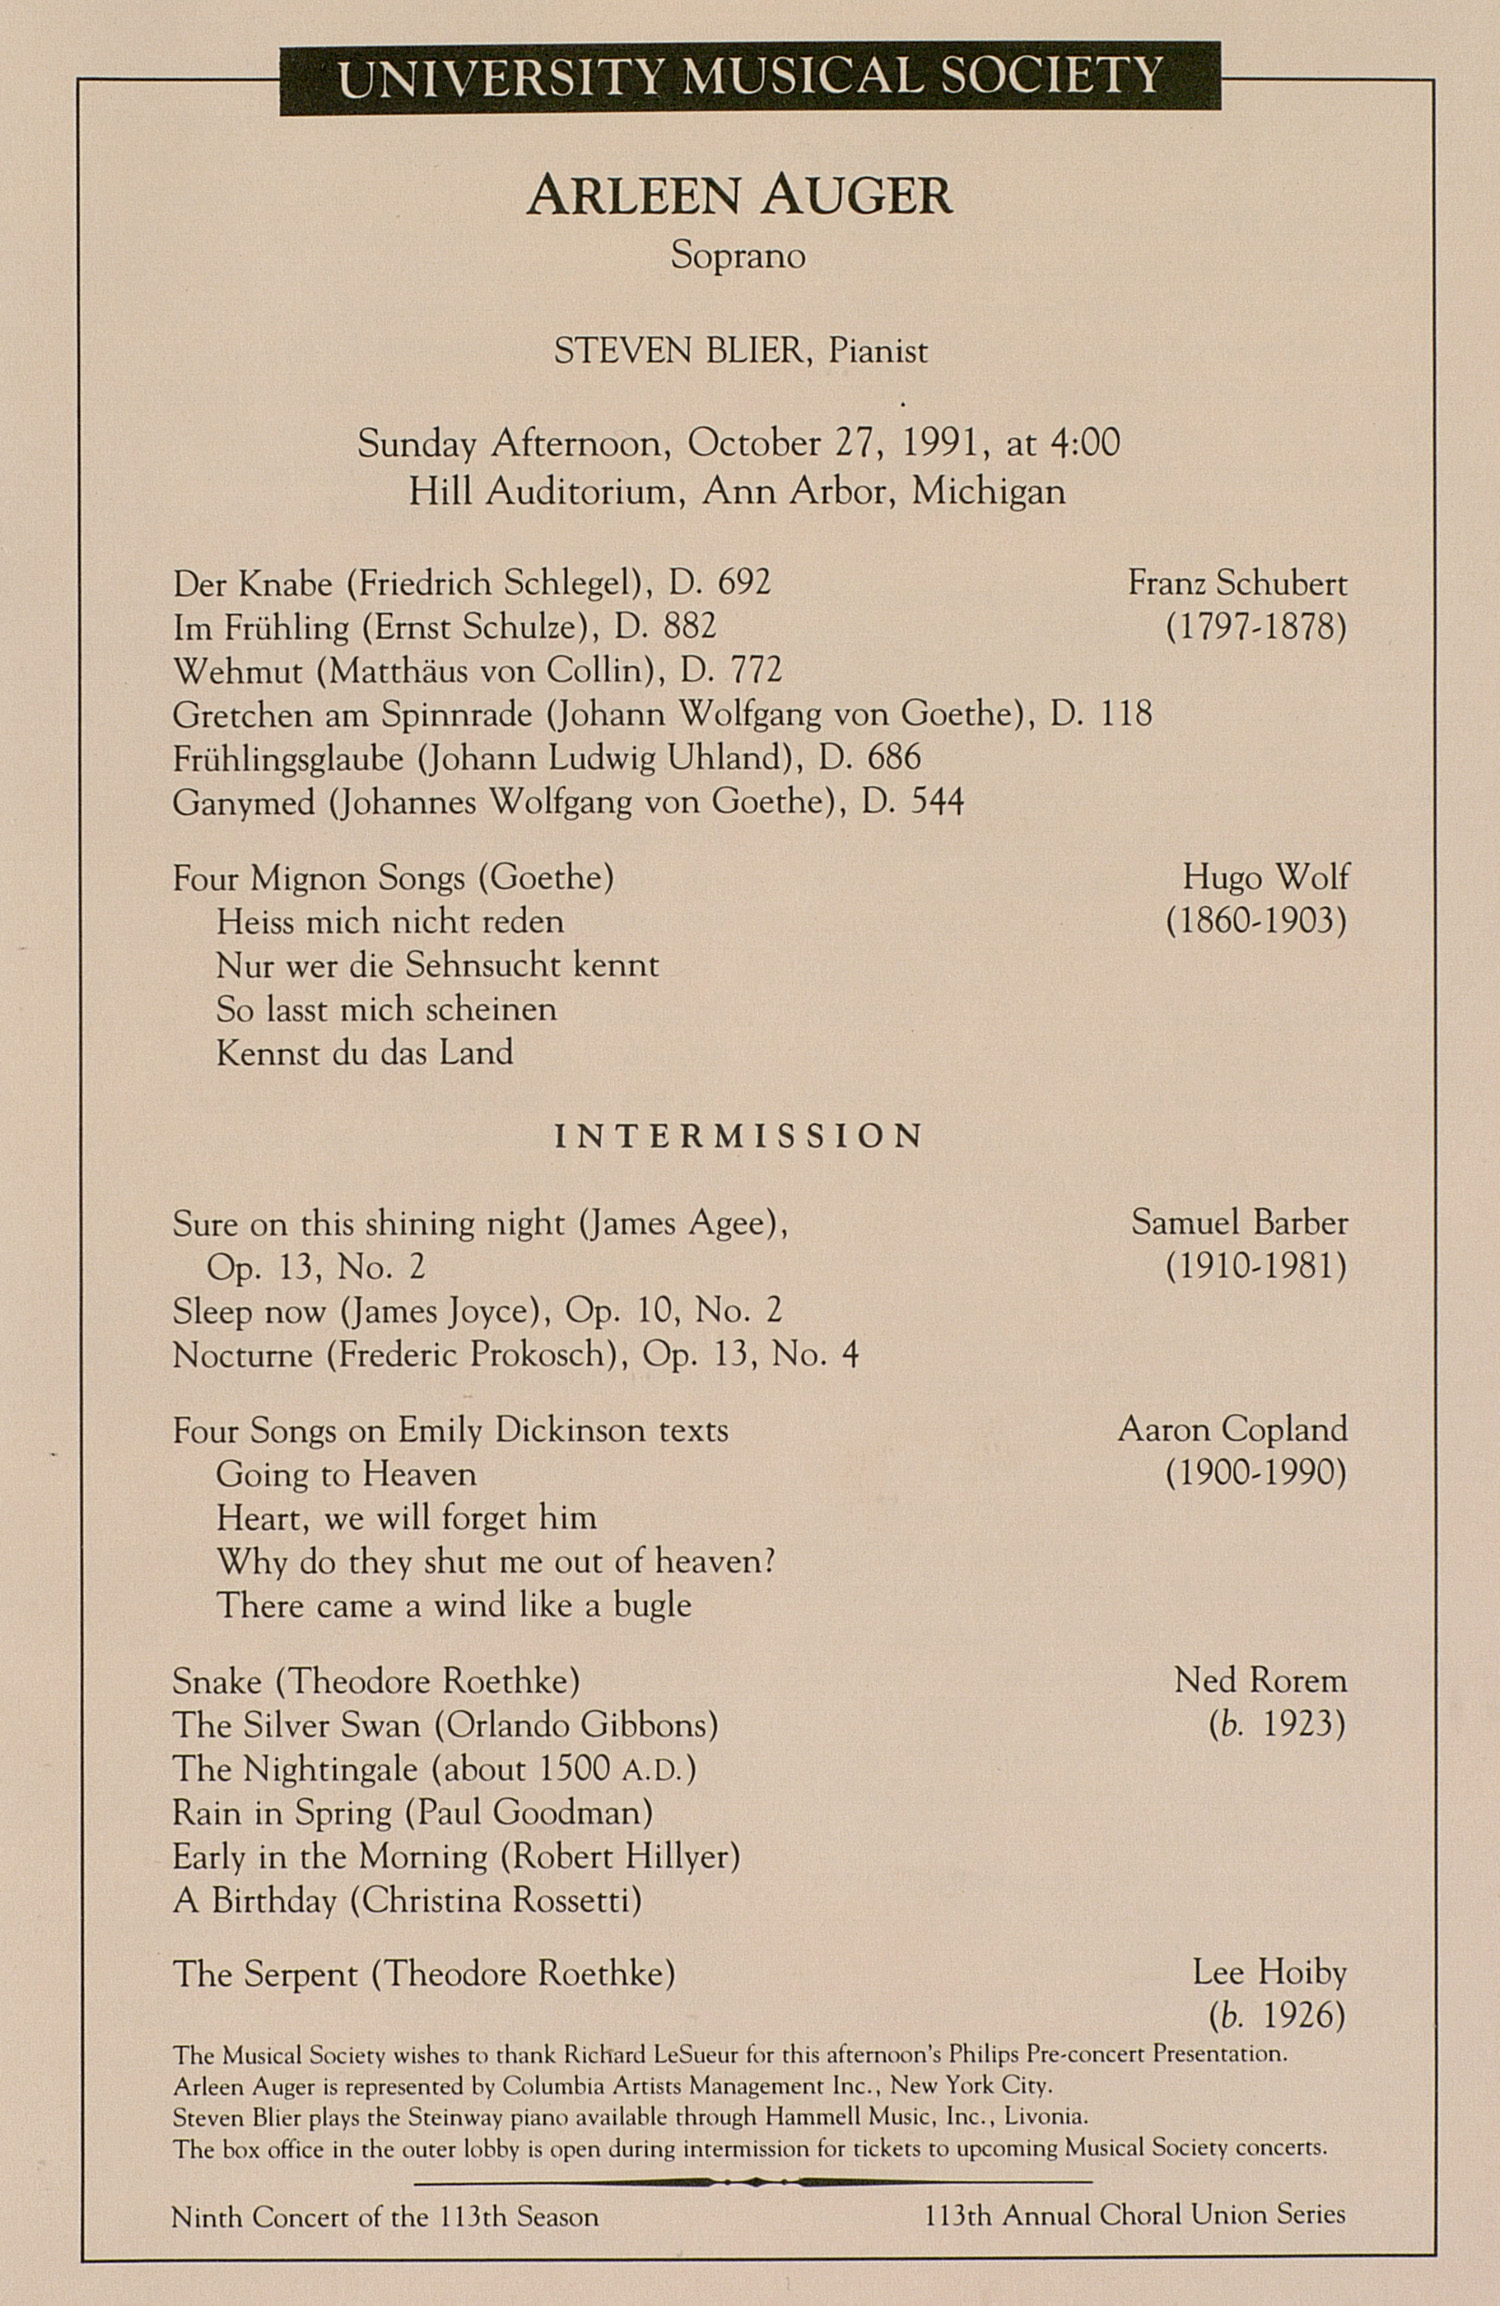 UMS Concert Program, October 27, 1991: University Musical Society --  image